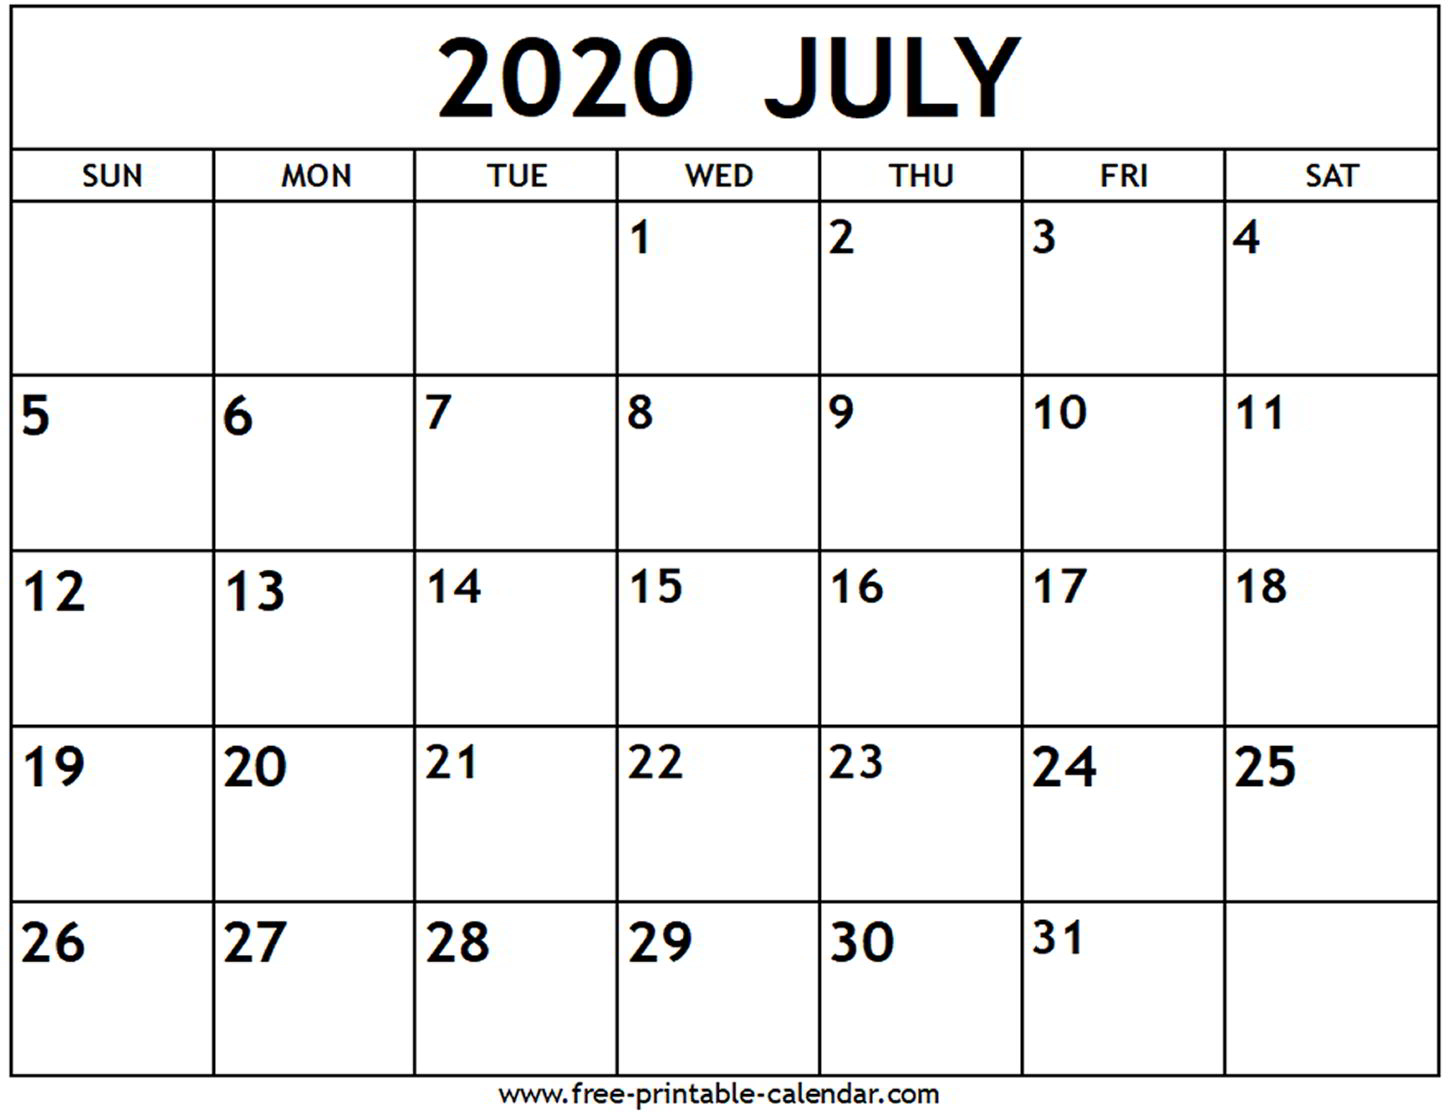 Calendar 2020 July  Bolan.horizonconsulting.co regarding Printable June 2020 Calendar